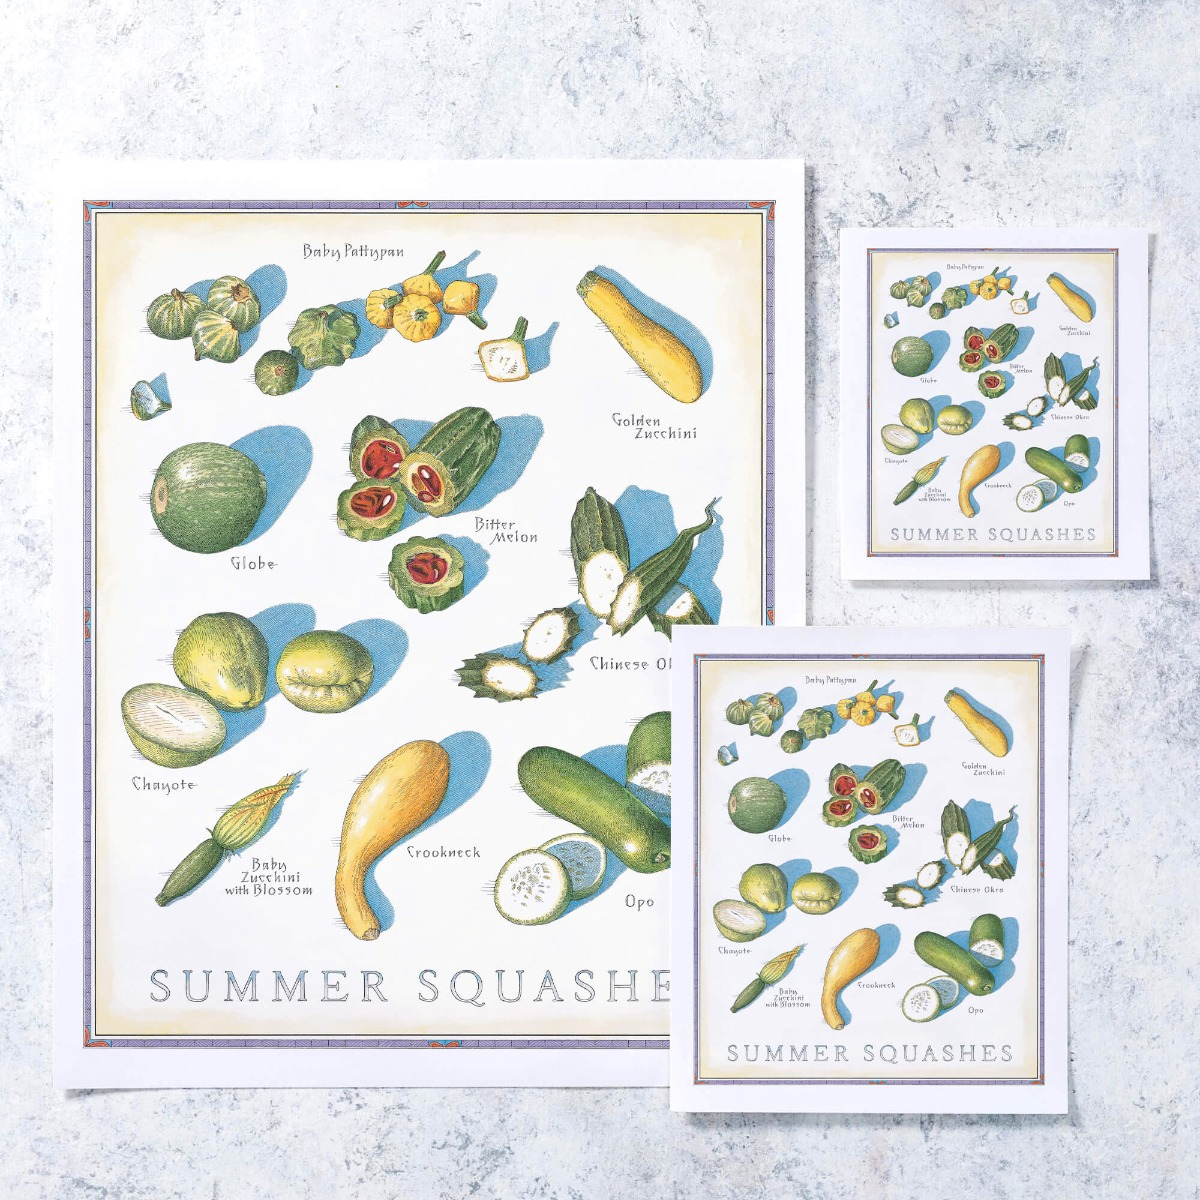 Cook's Illustrated Unframed Print: Summer Squashes